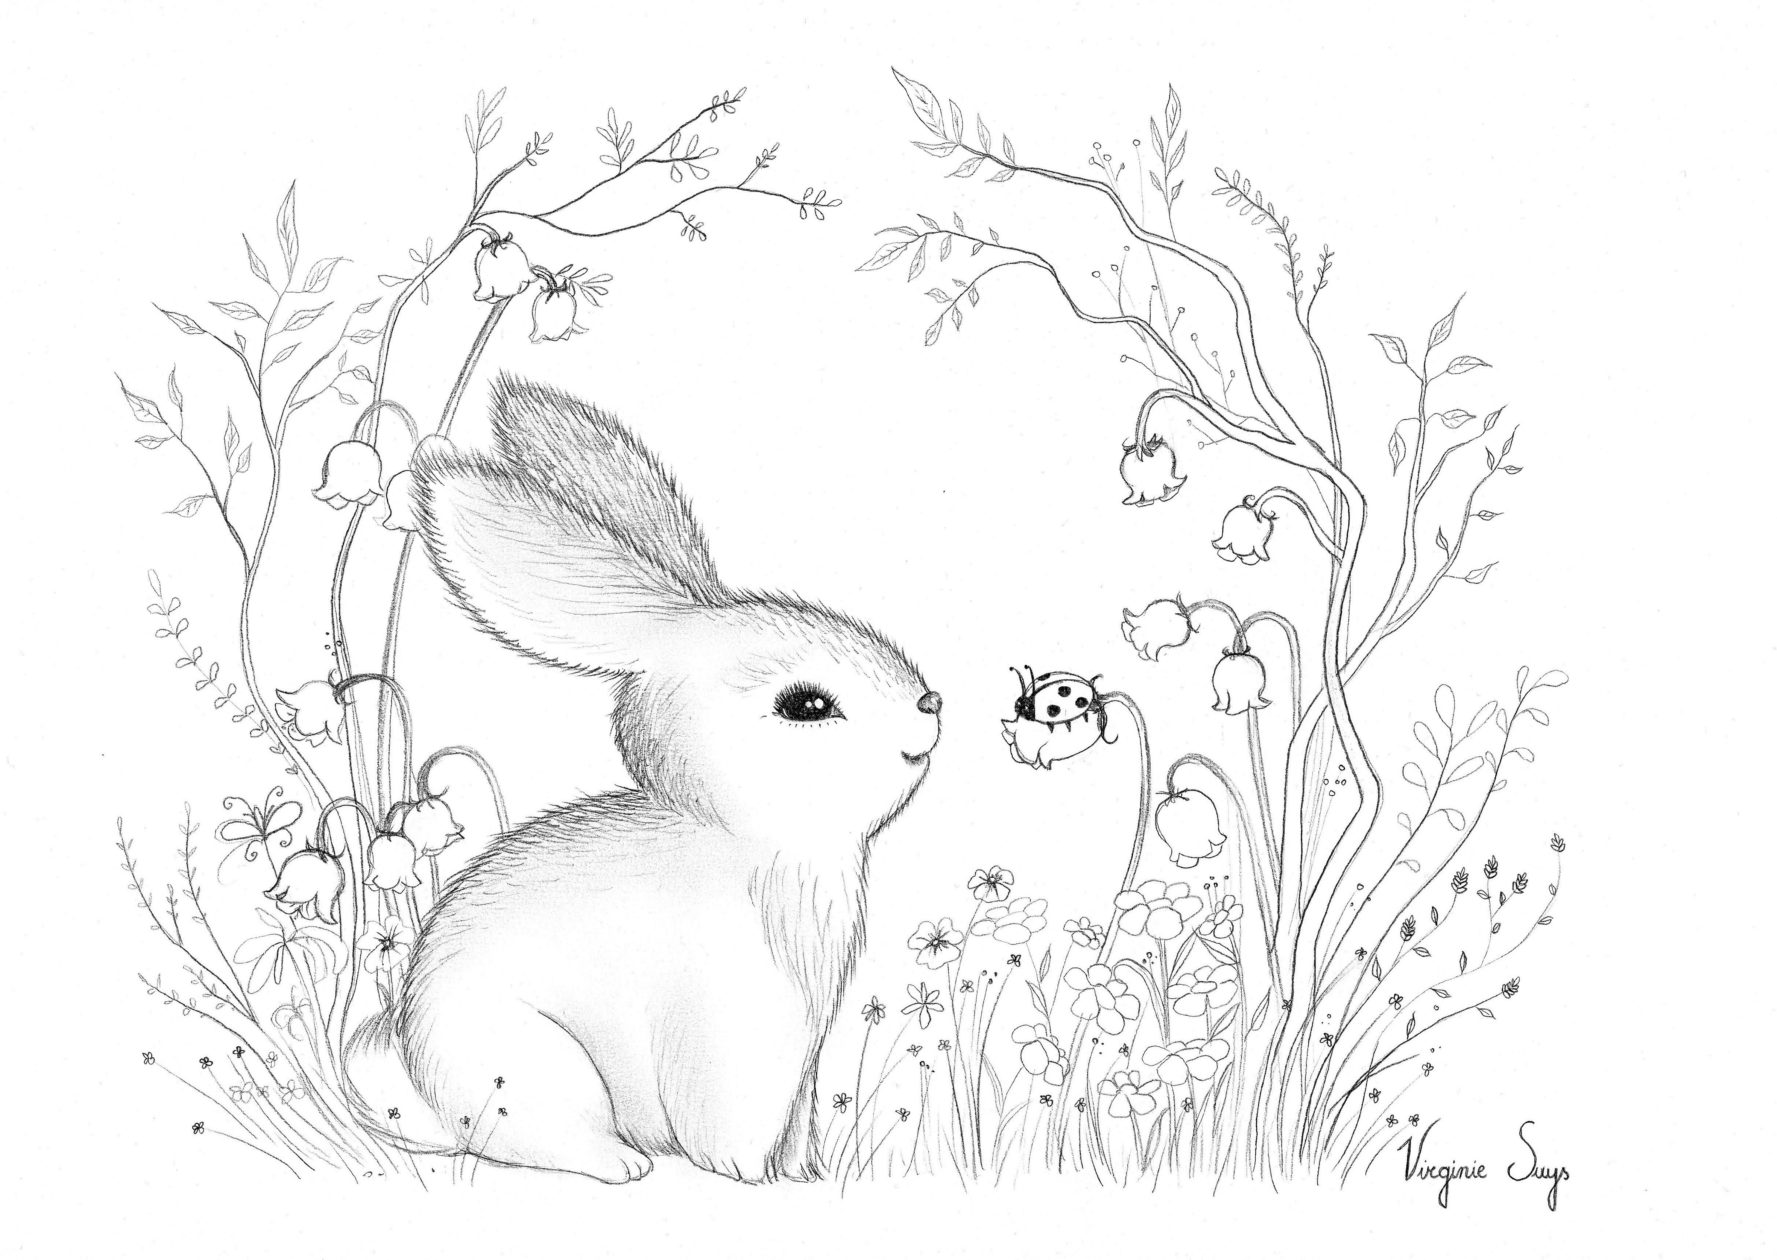 Virginie Suys Rabbit in flowers in black & white illustration